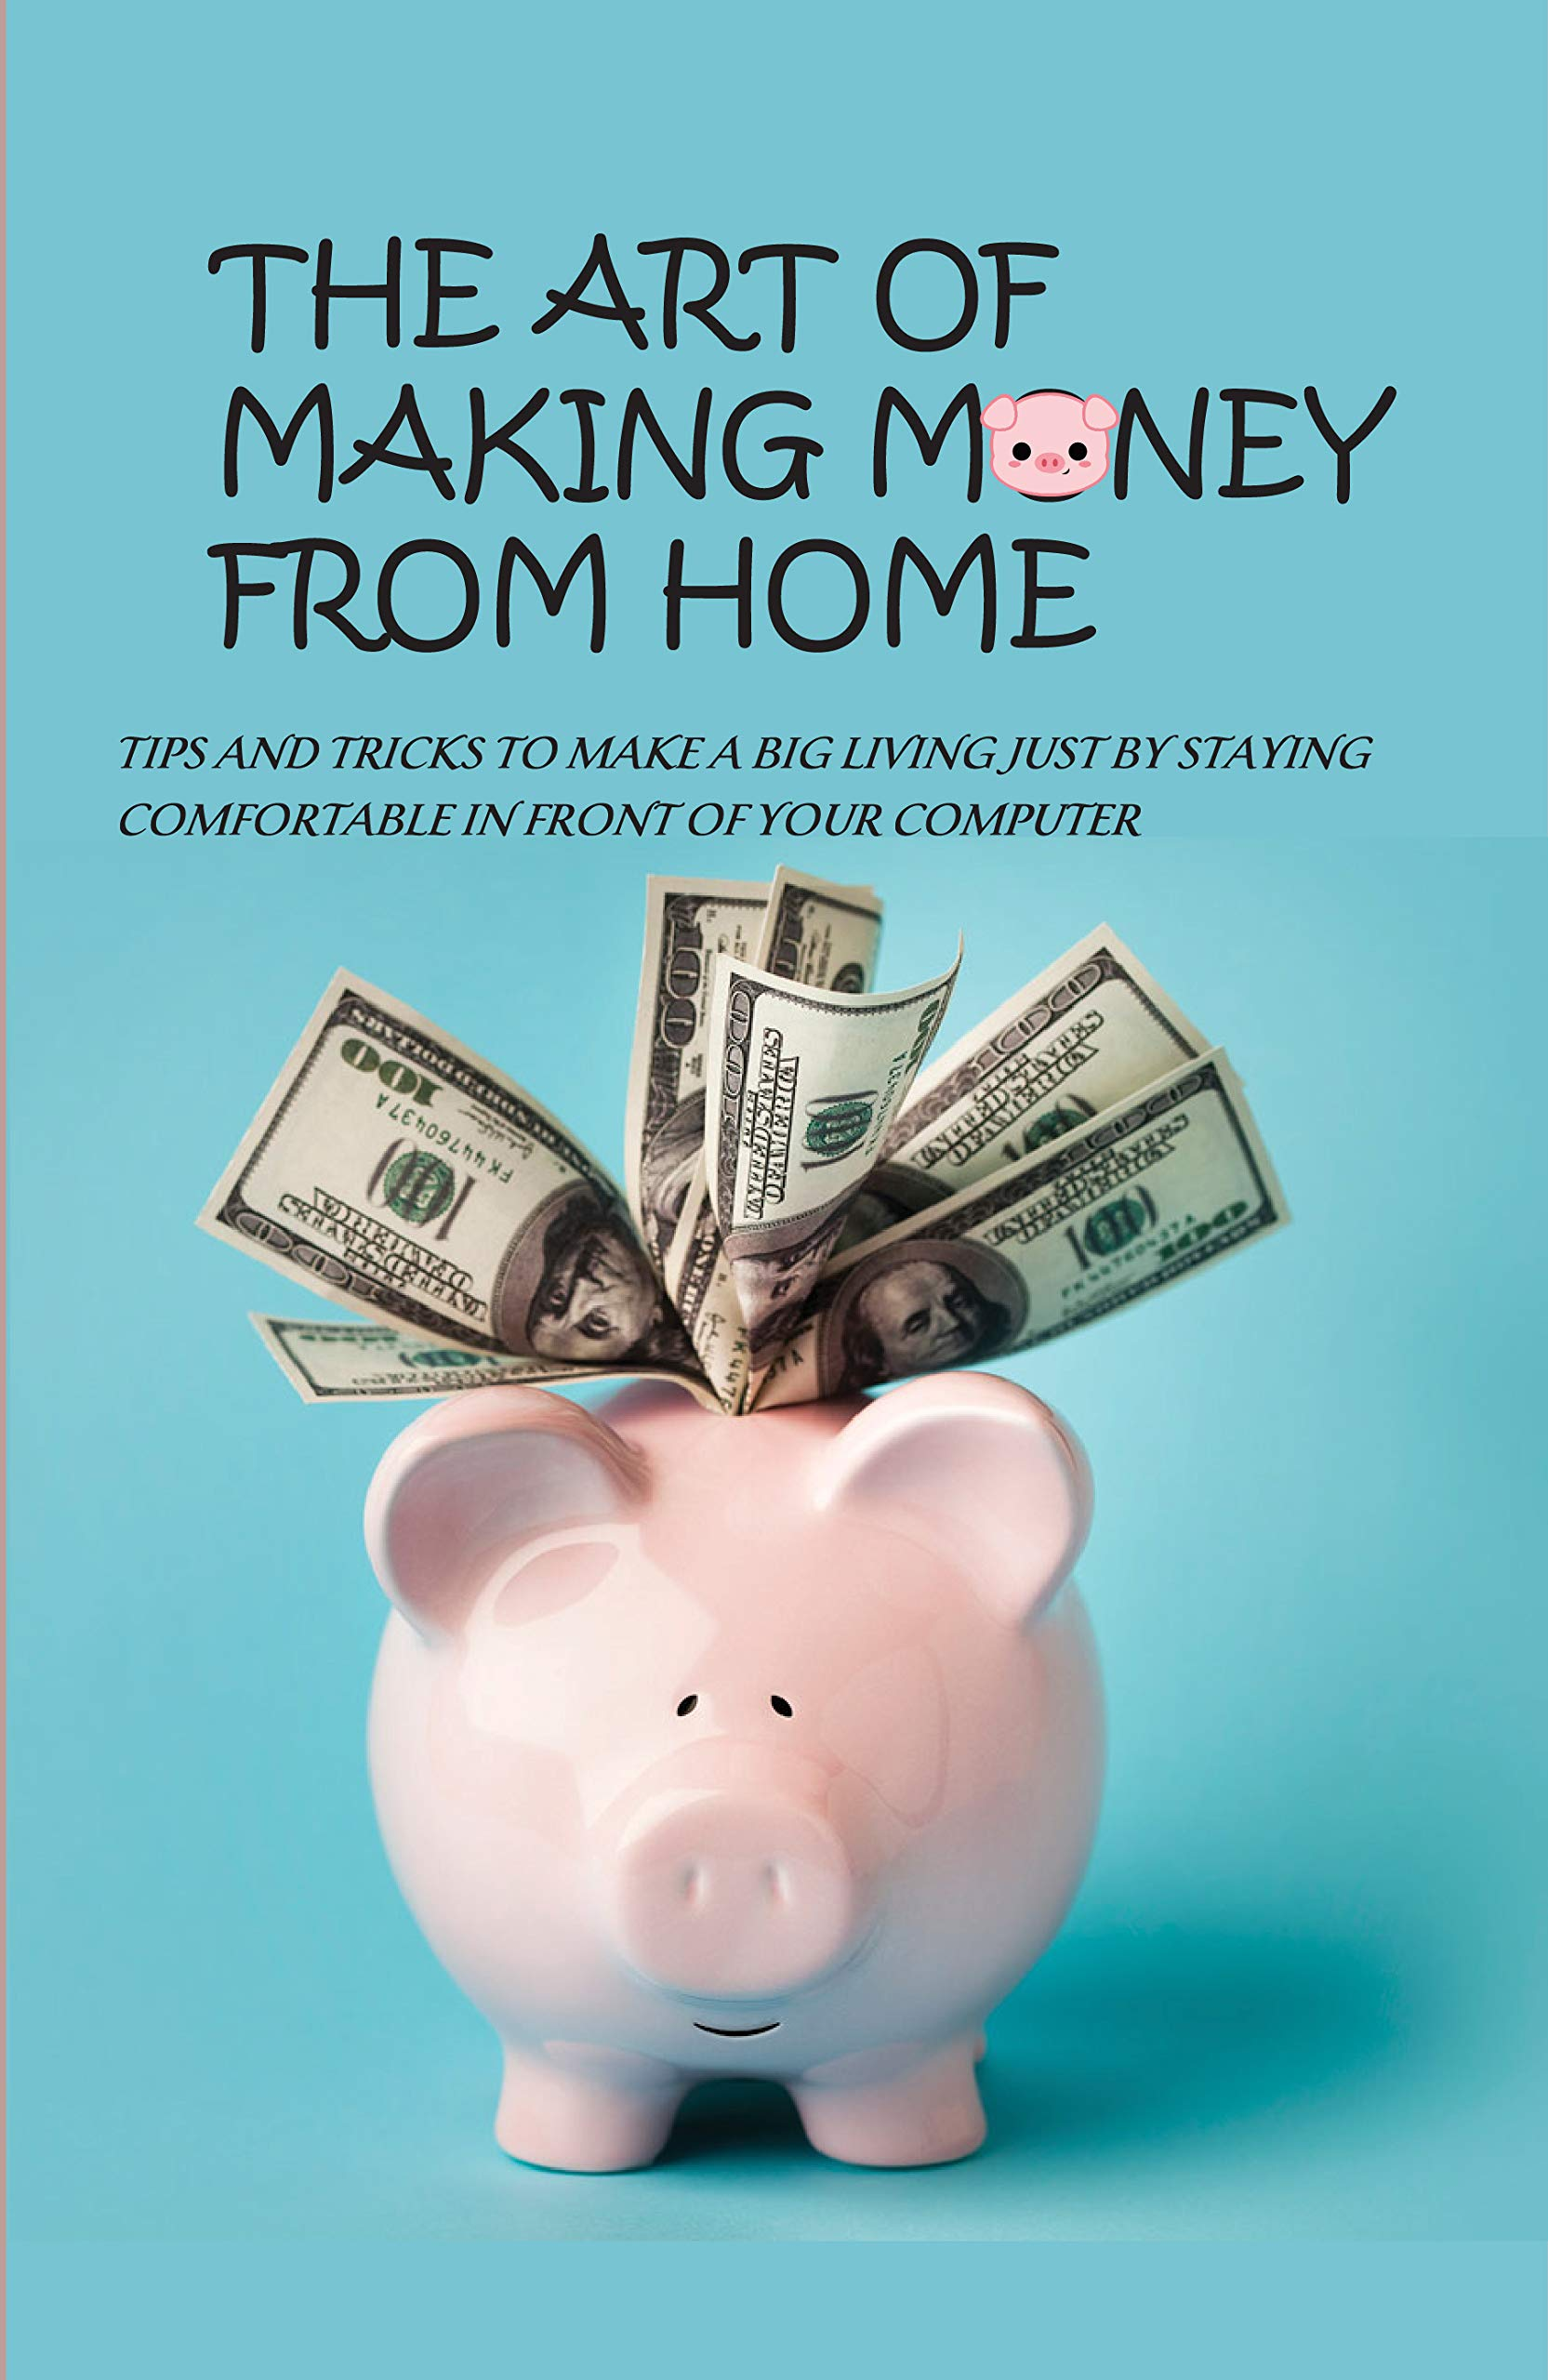 The Art Of Making Money From Home: Tips And Tricks To Make A Big Living Just By Staying Comfortable In Front Of Your Computer: Financial Books For Beginners